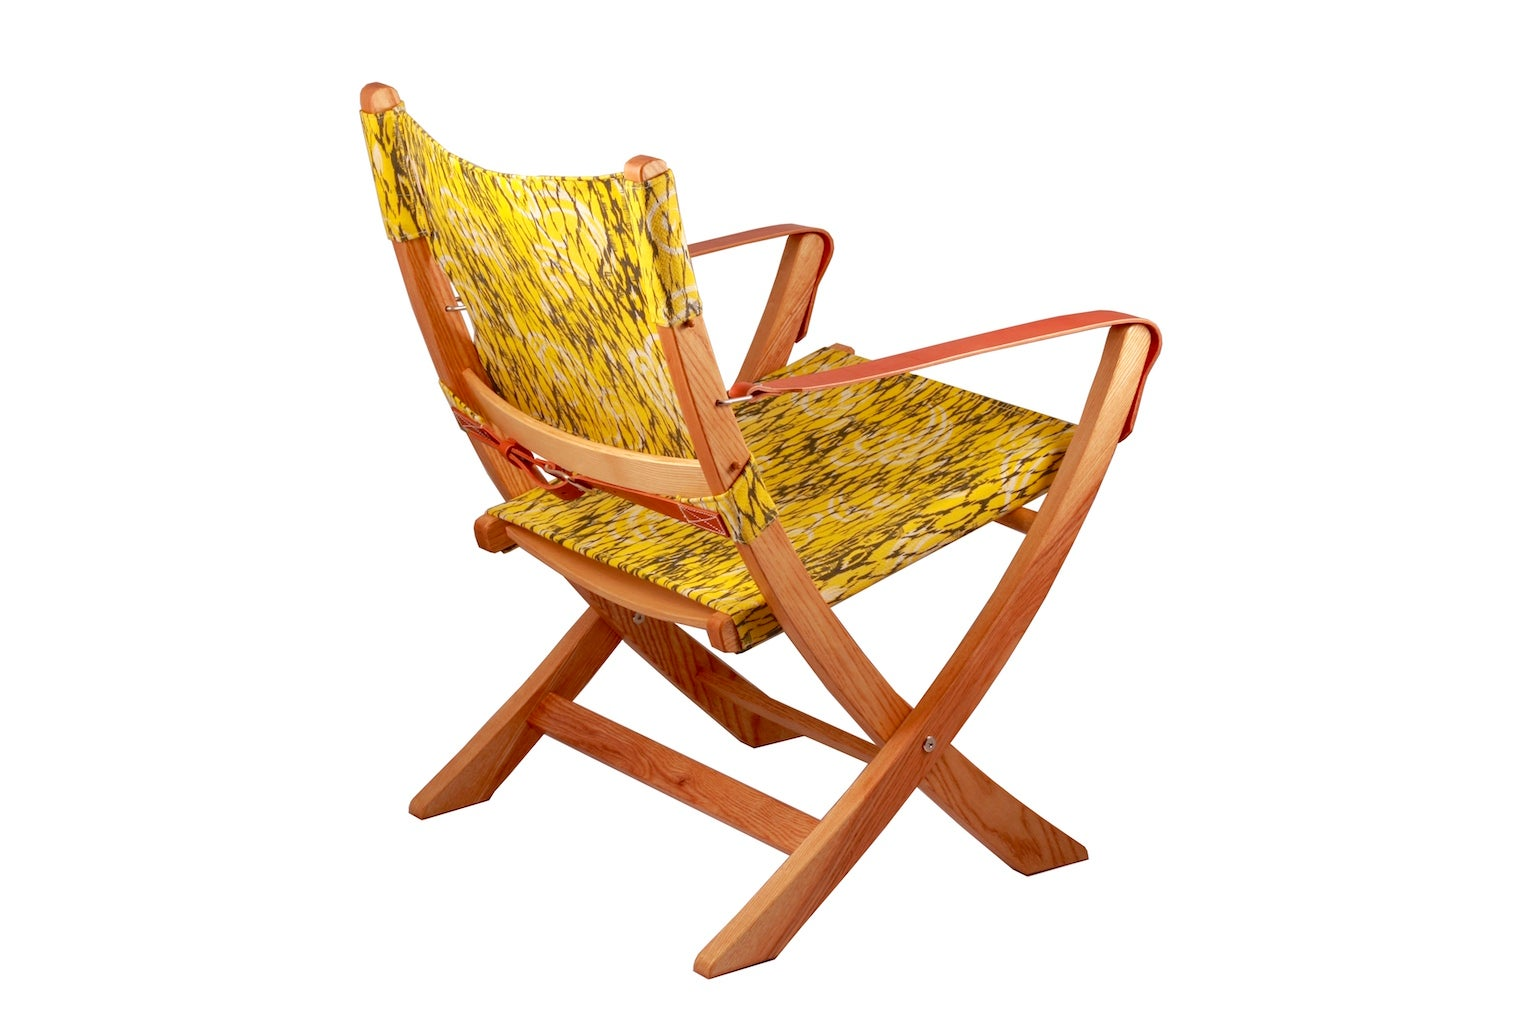 Campaign Chair Vintage Retro Fabric Yellow Leather Arm Straps Handmade Ash Frame At 1stdibs